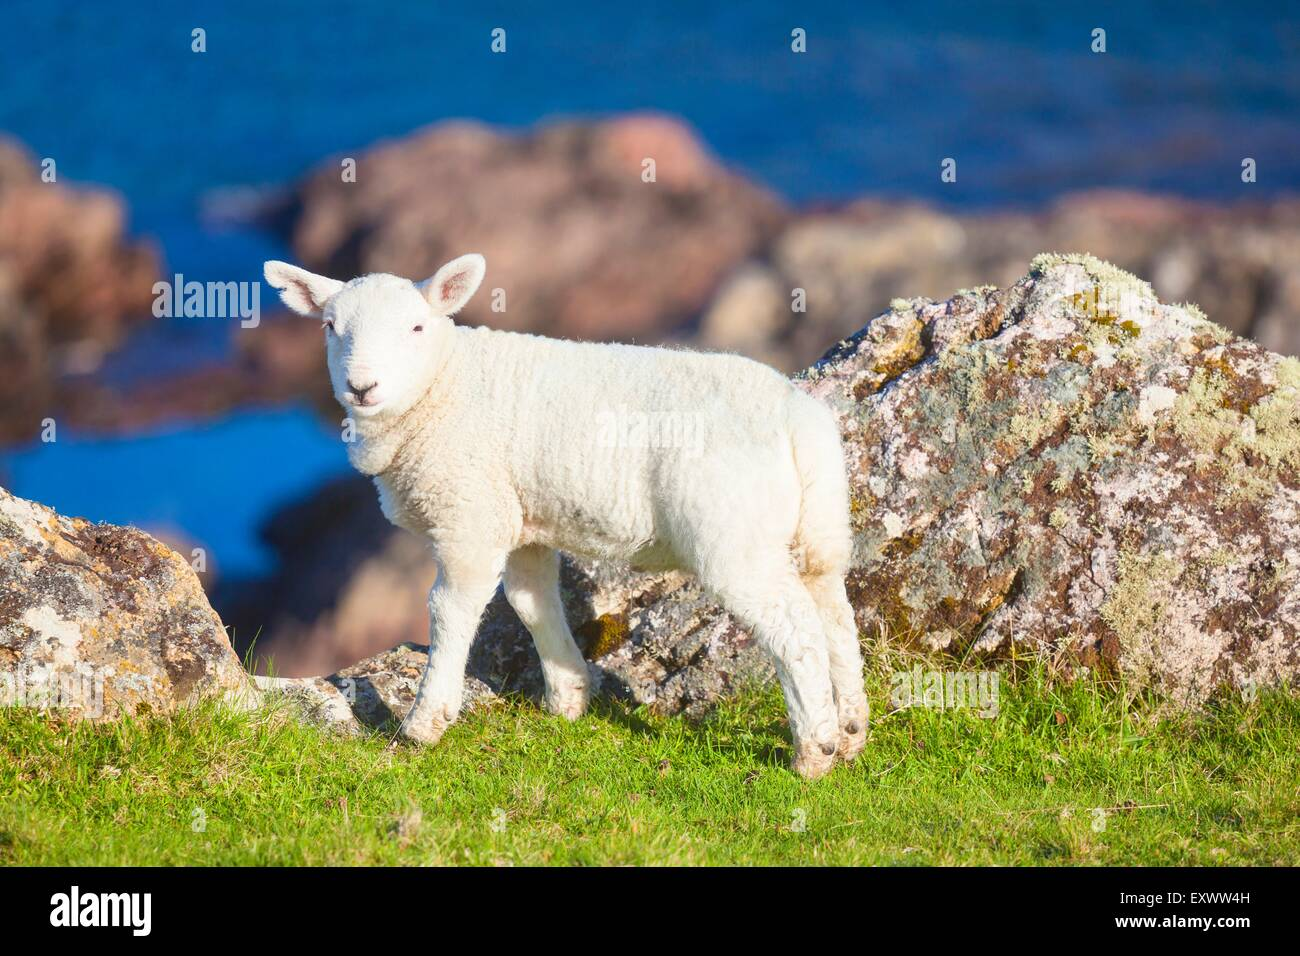 Lamb at the Northwestern coast of Scotland at Kinlochbervie - Stock Image